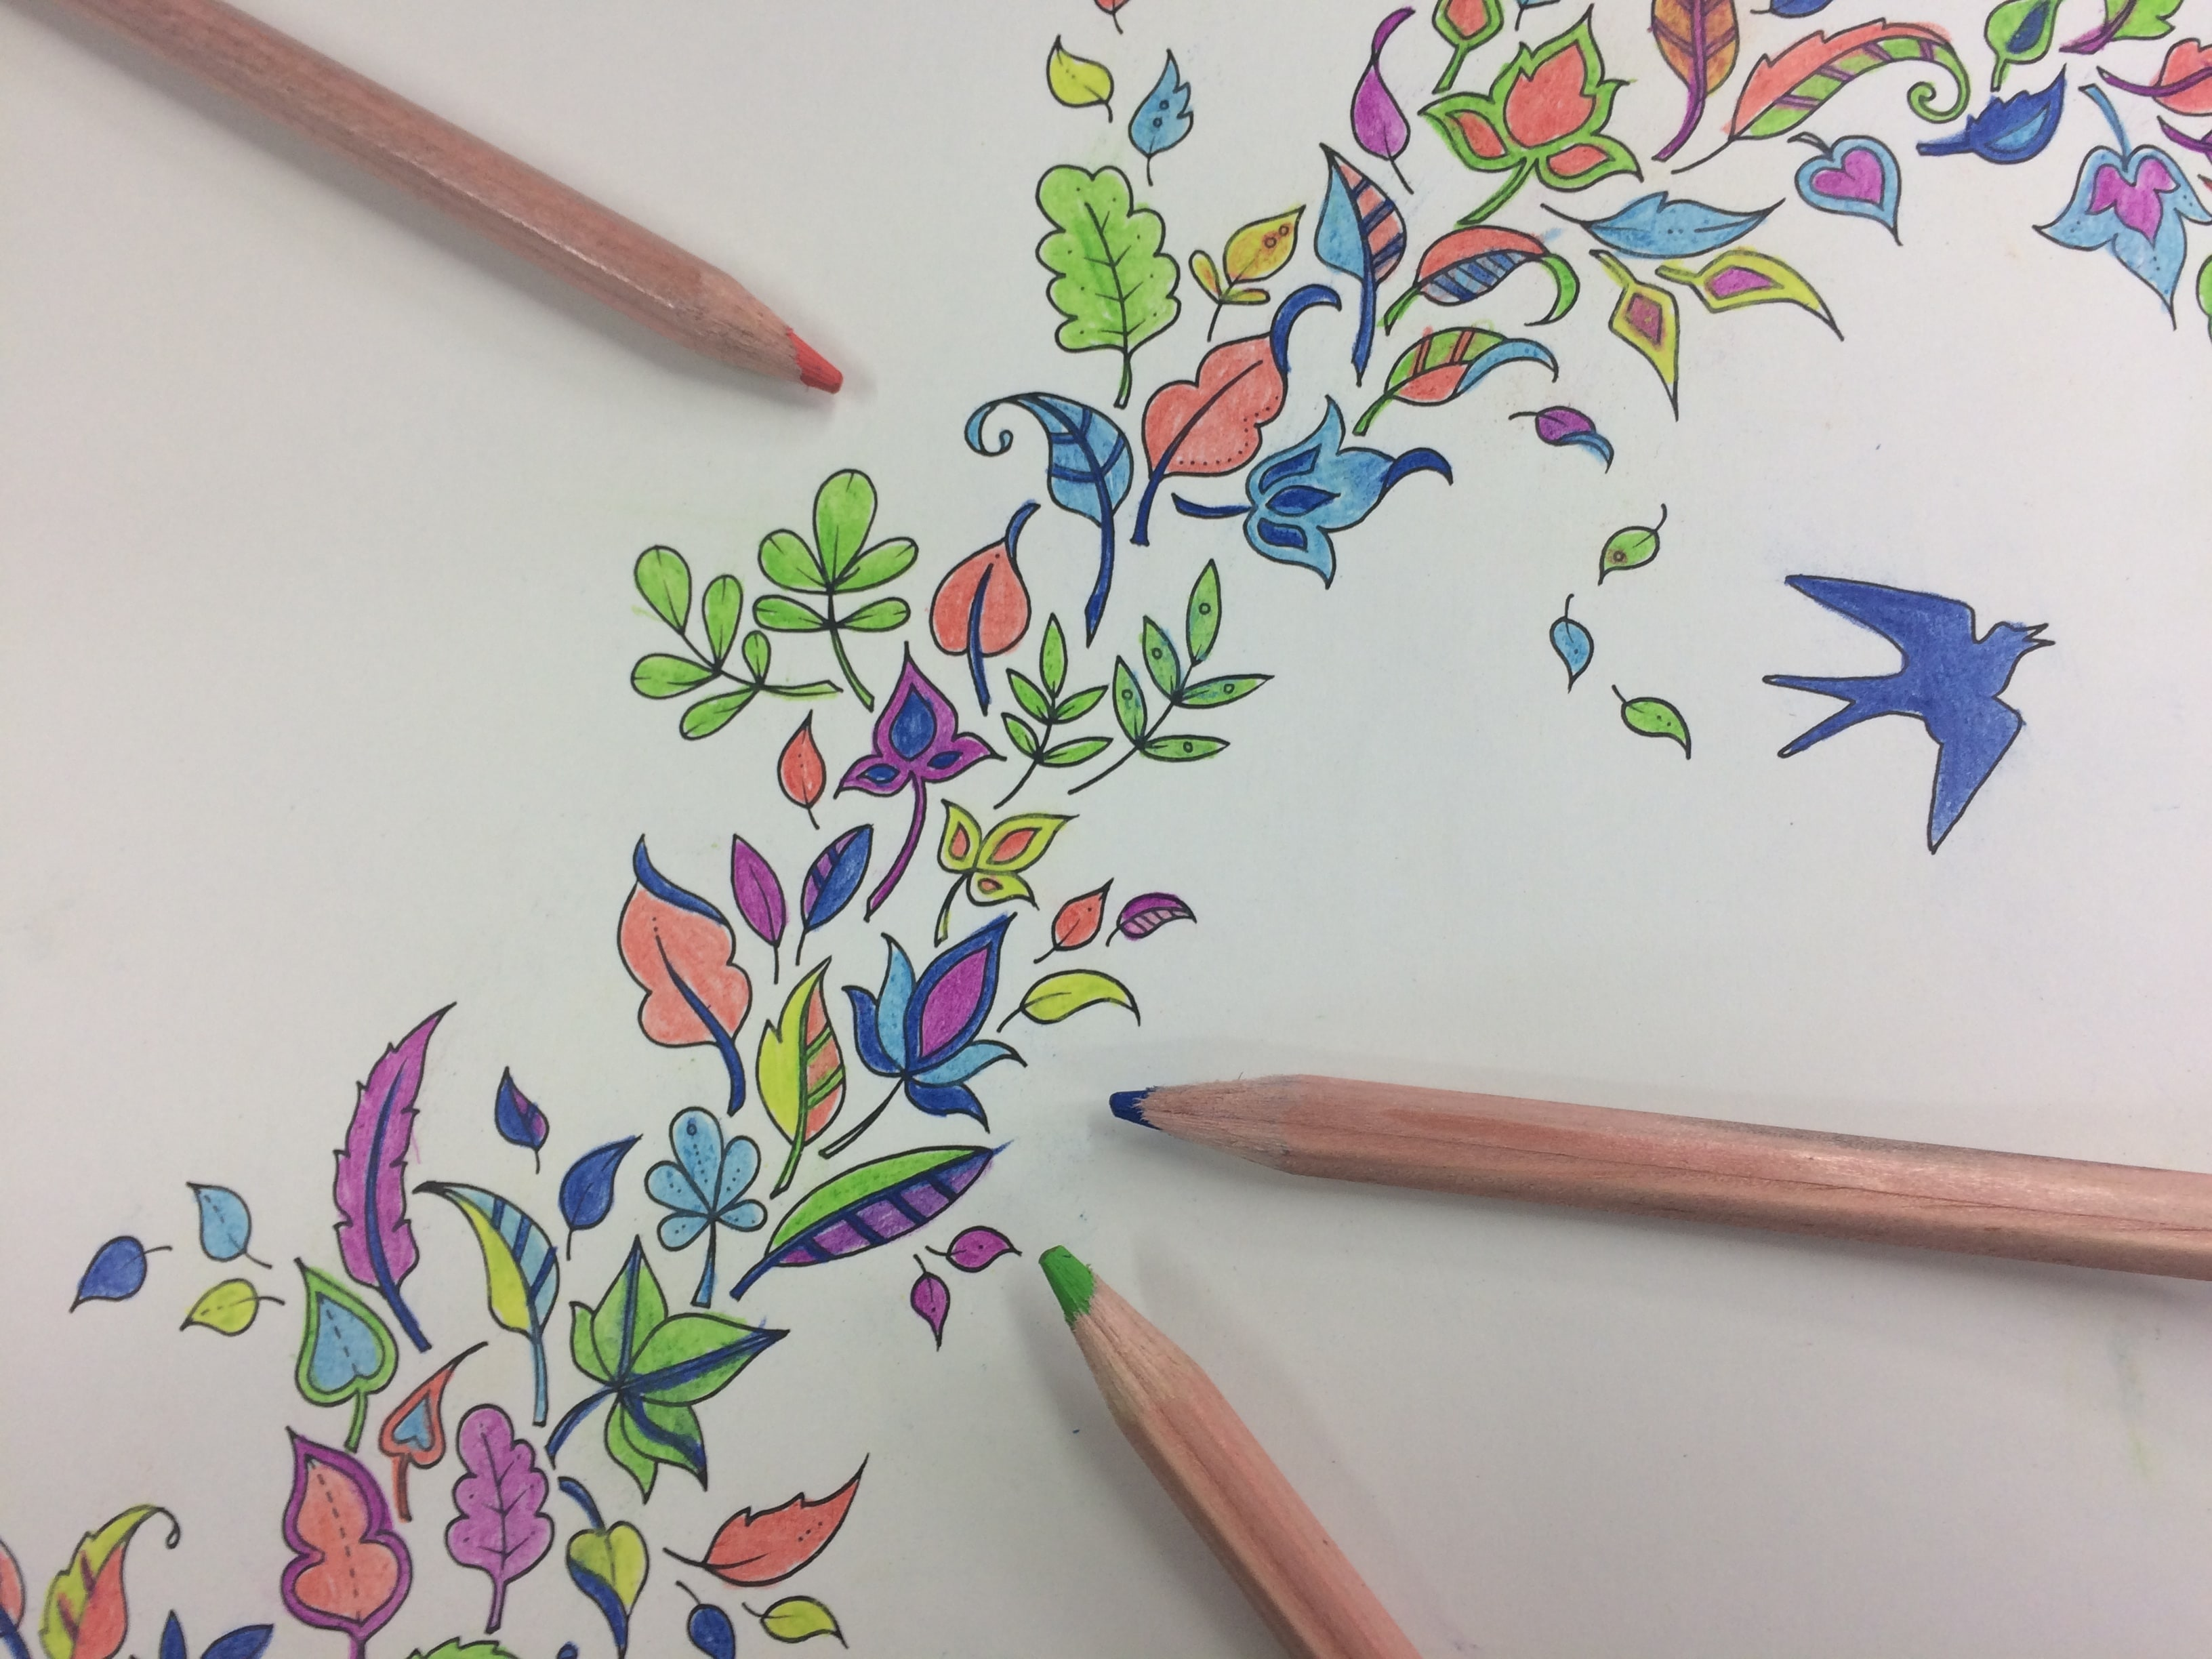 Colouring In For Adults De Stress With This New Craze